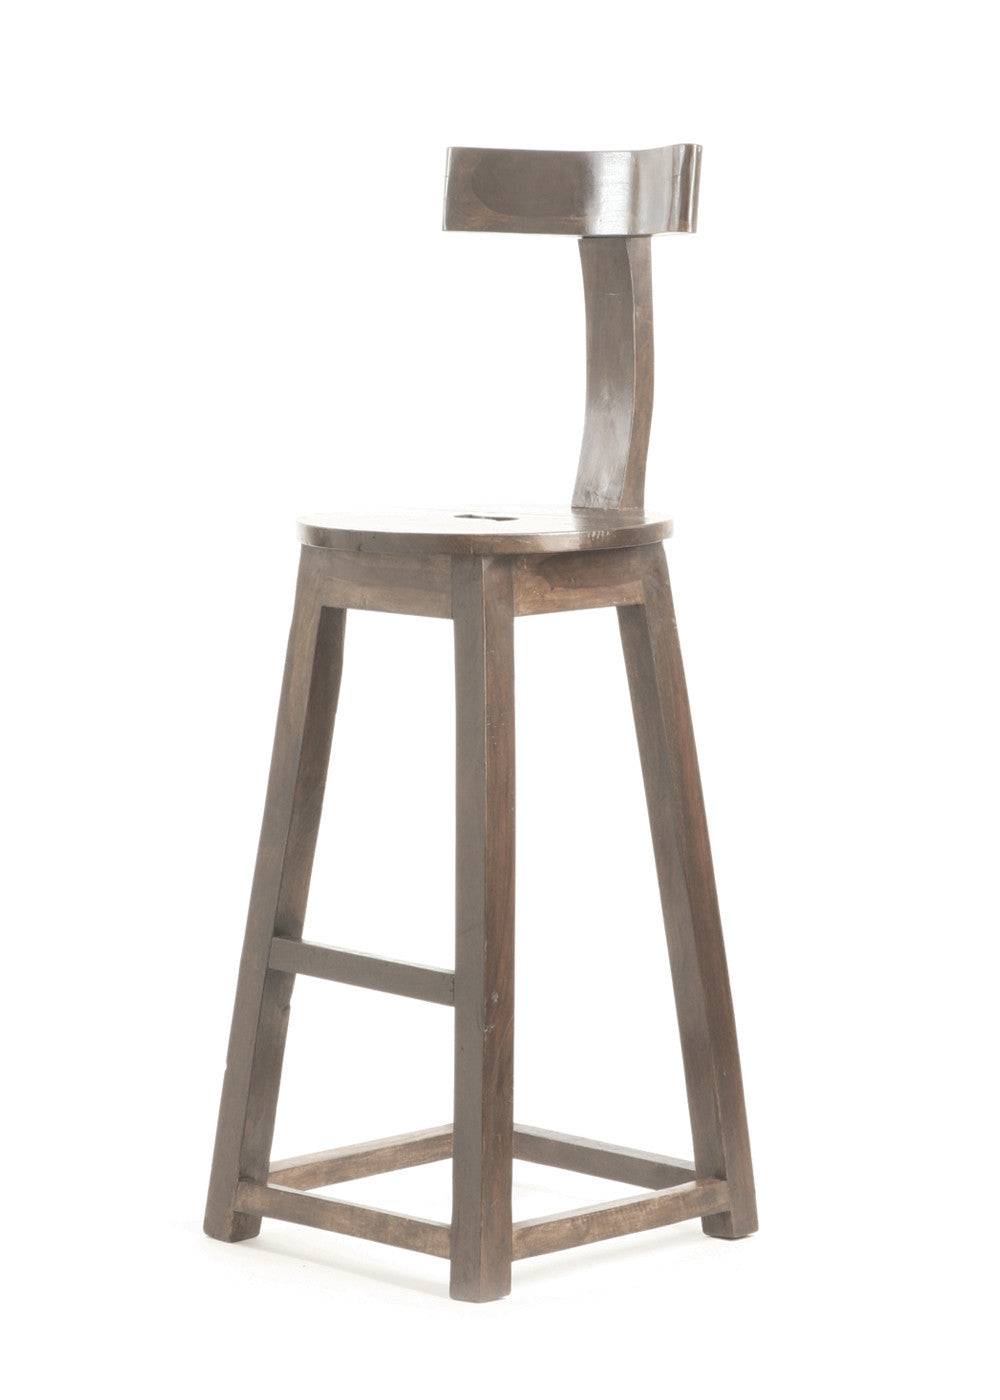 Modern, Contemporary, Rustic & Industrial Bar Stools | Alan Decor